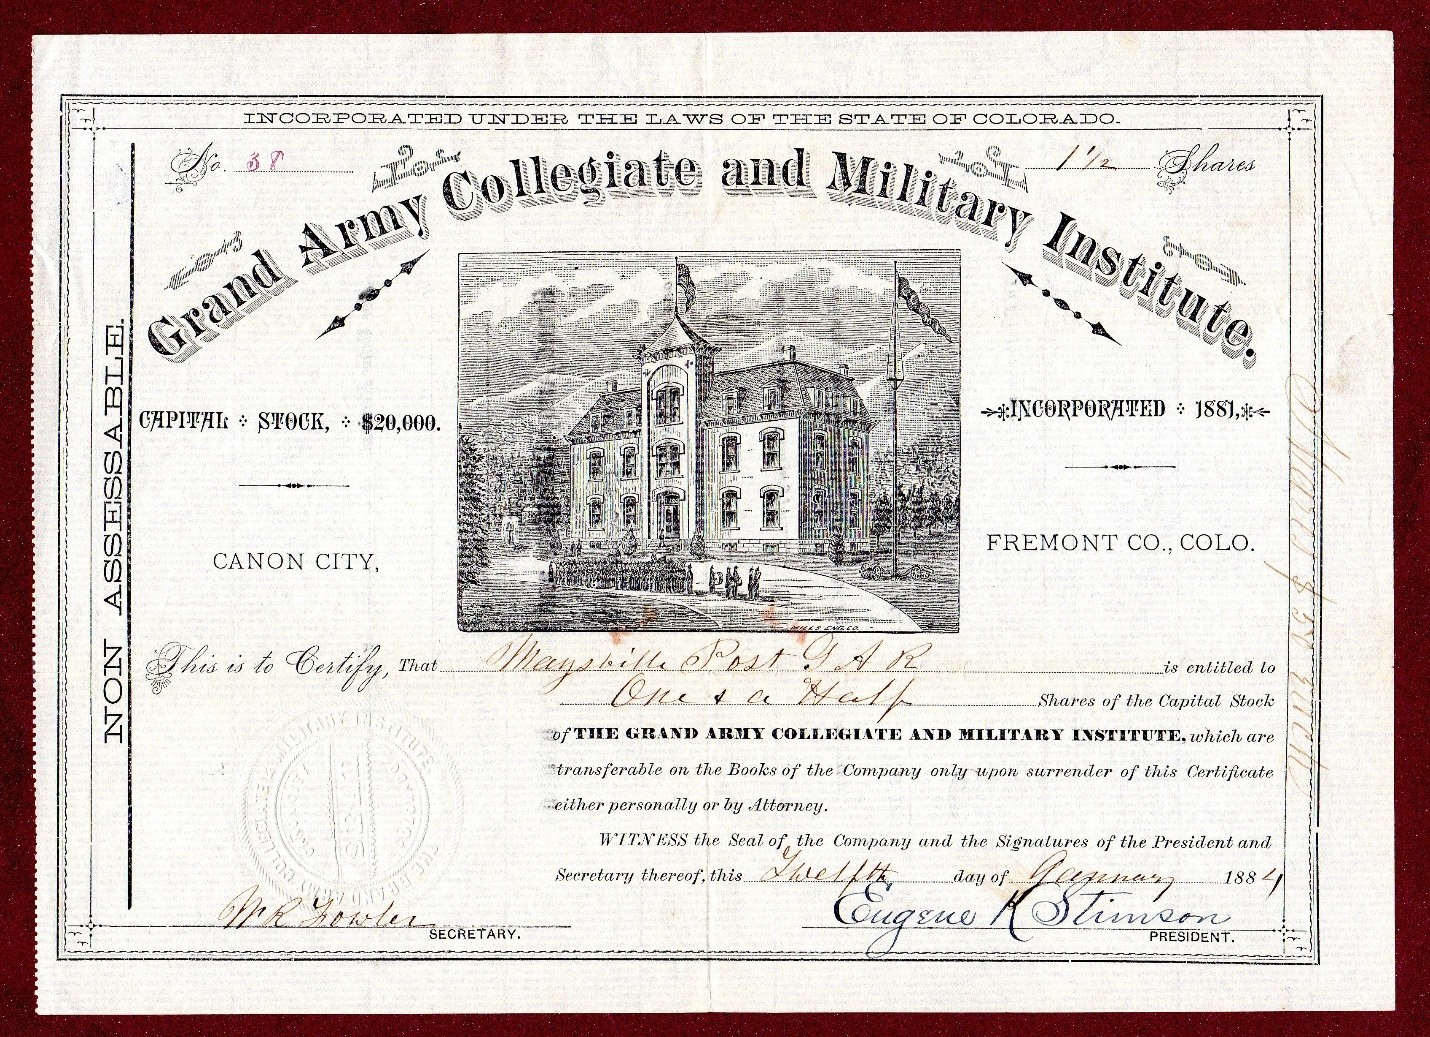 Photocopy of a stock certificate that was issued for the Colorado Collegiate & Military Academy, 1884. Object ID: 2012.031.001